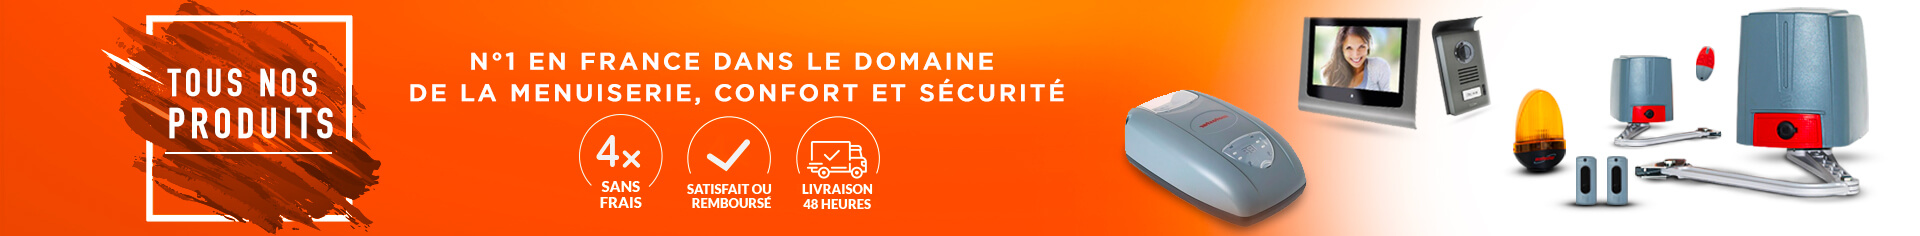 TOP VENTES COFFRE DE SECURITE